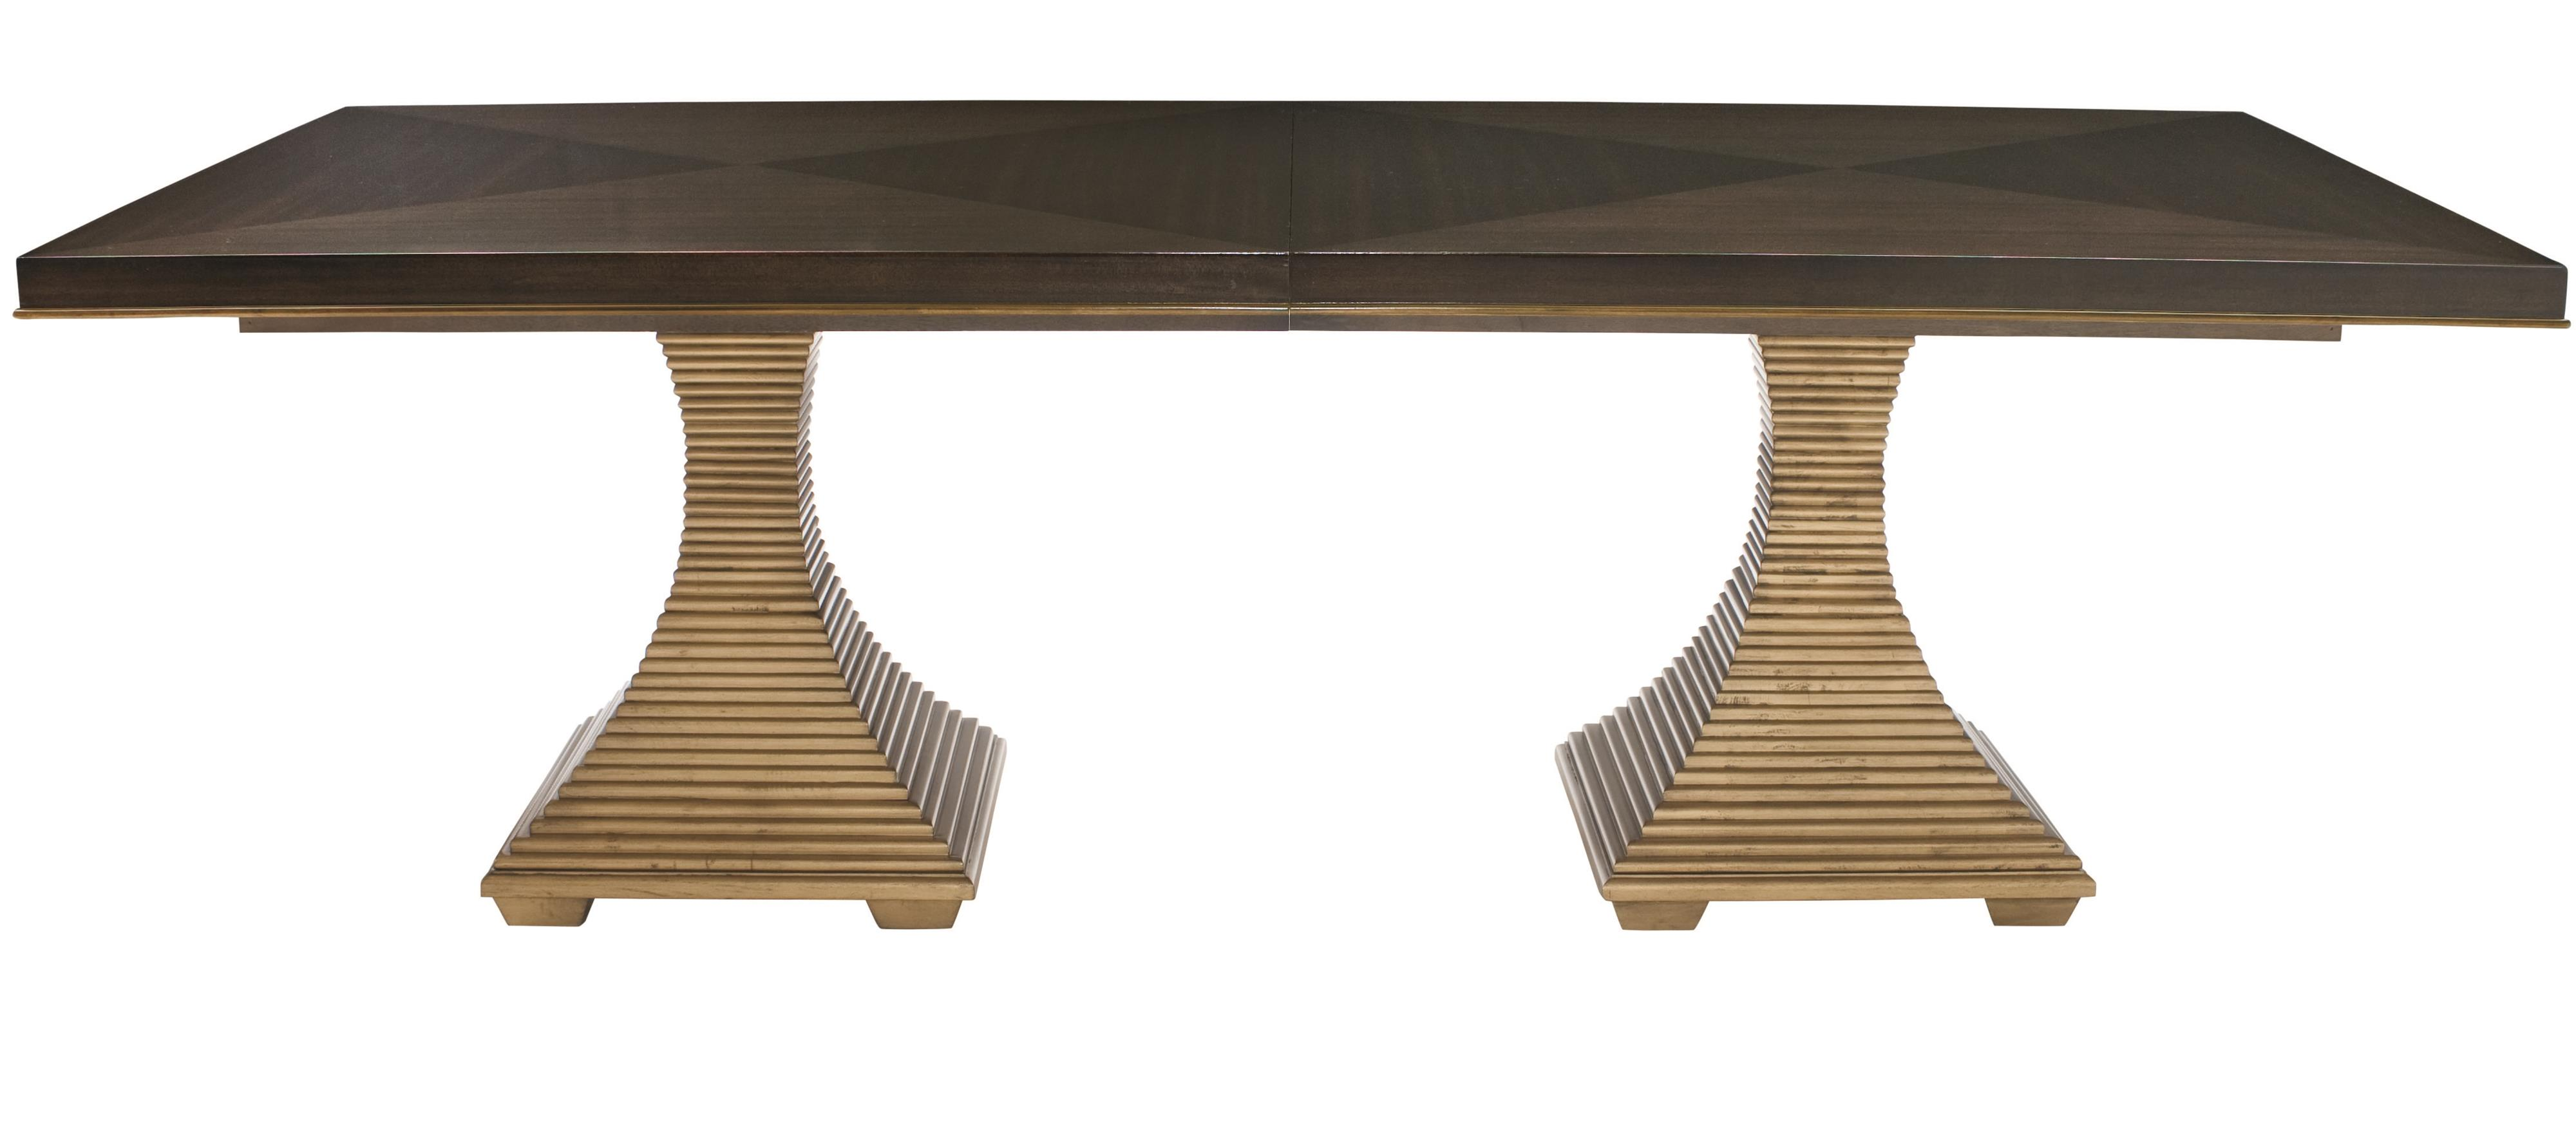 Jet Set Double Pedestal Dining Table at Williams & Kay